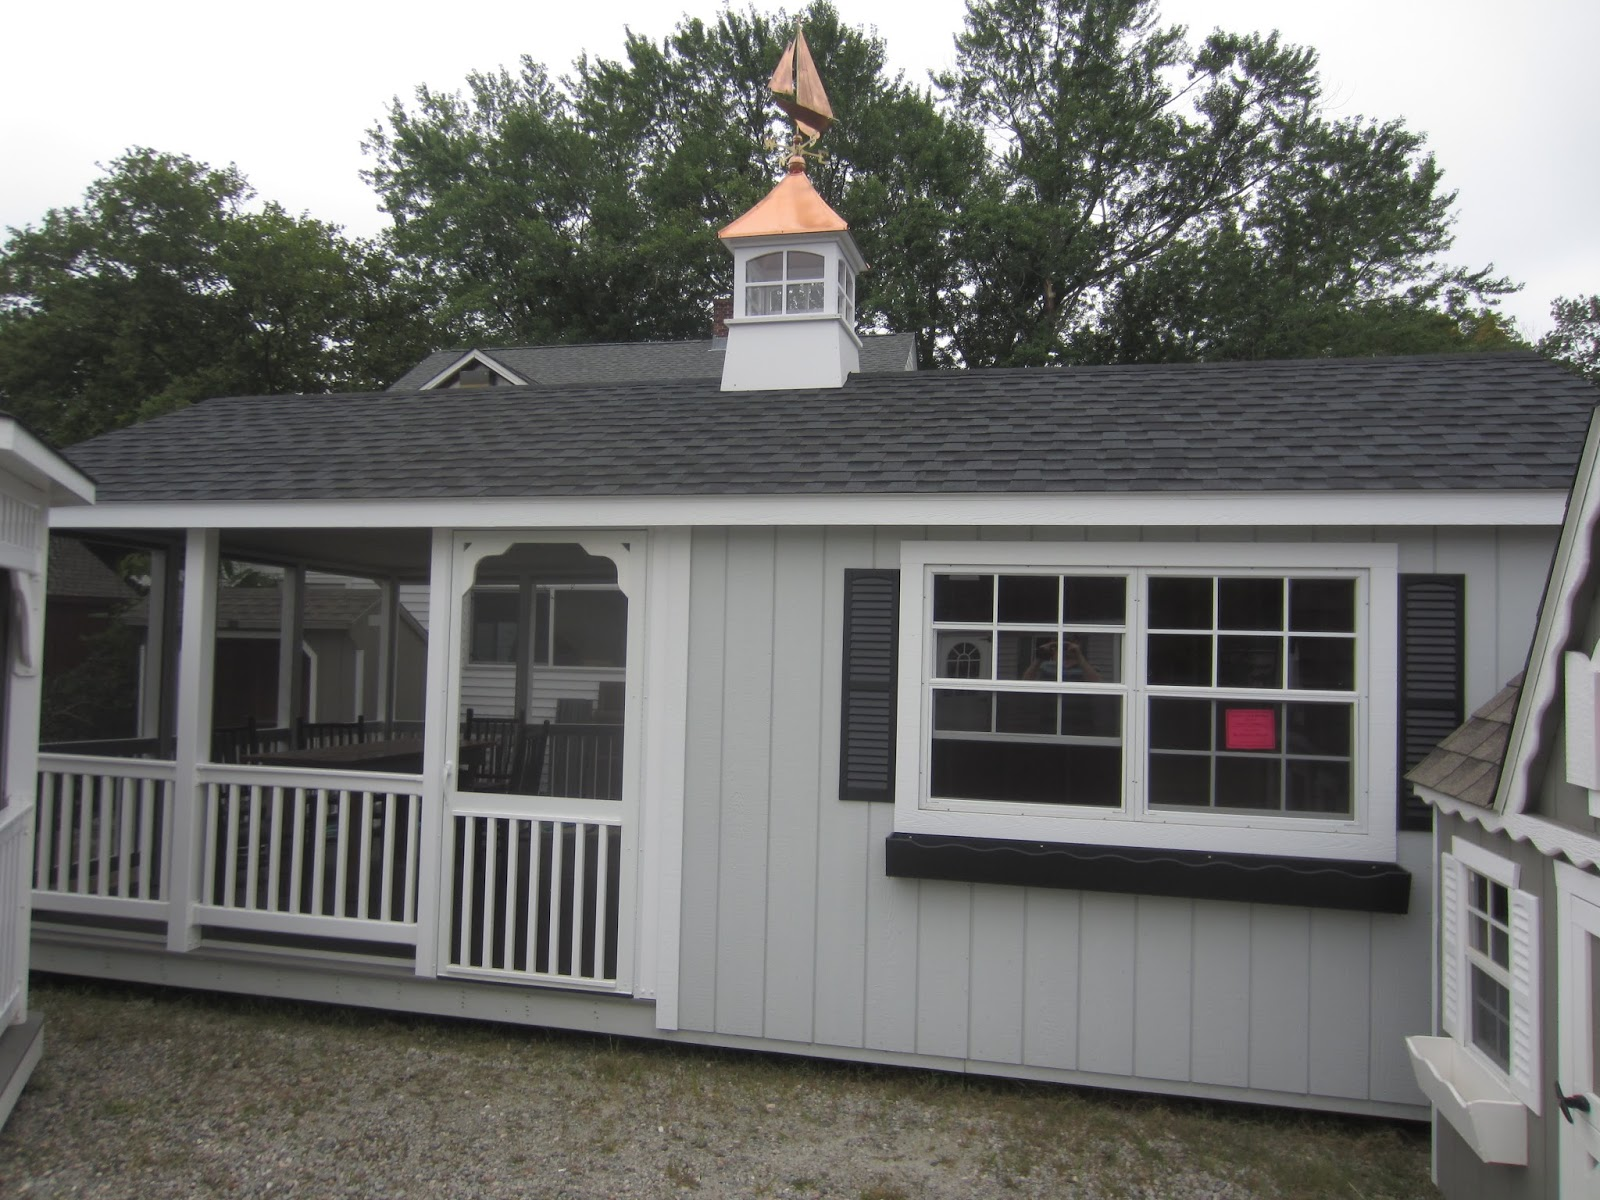 Relaxshacks.com: Carefree Small Buildings Of Old Saybrook